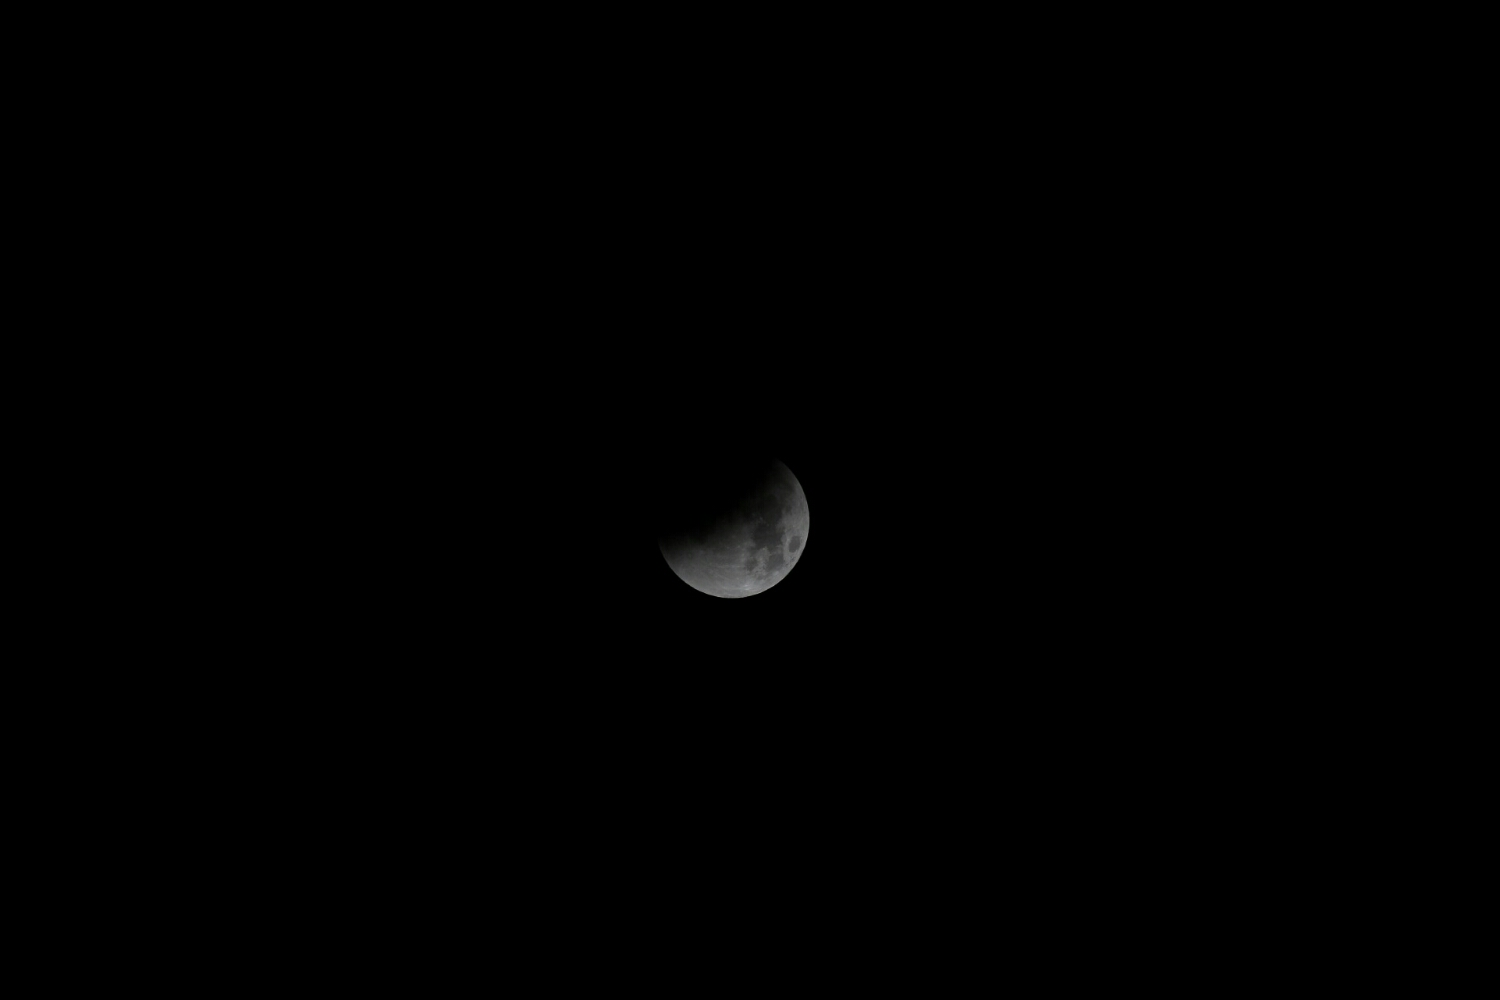 uncropped eclipse at 400mm on Canon 6D